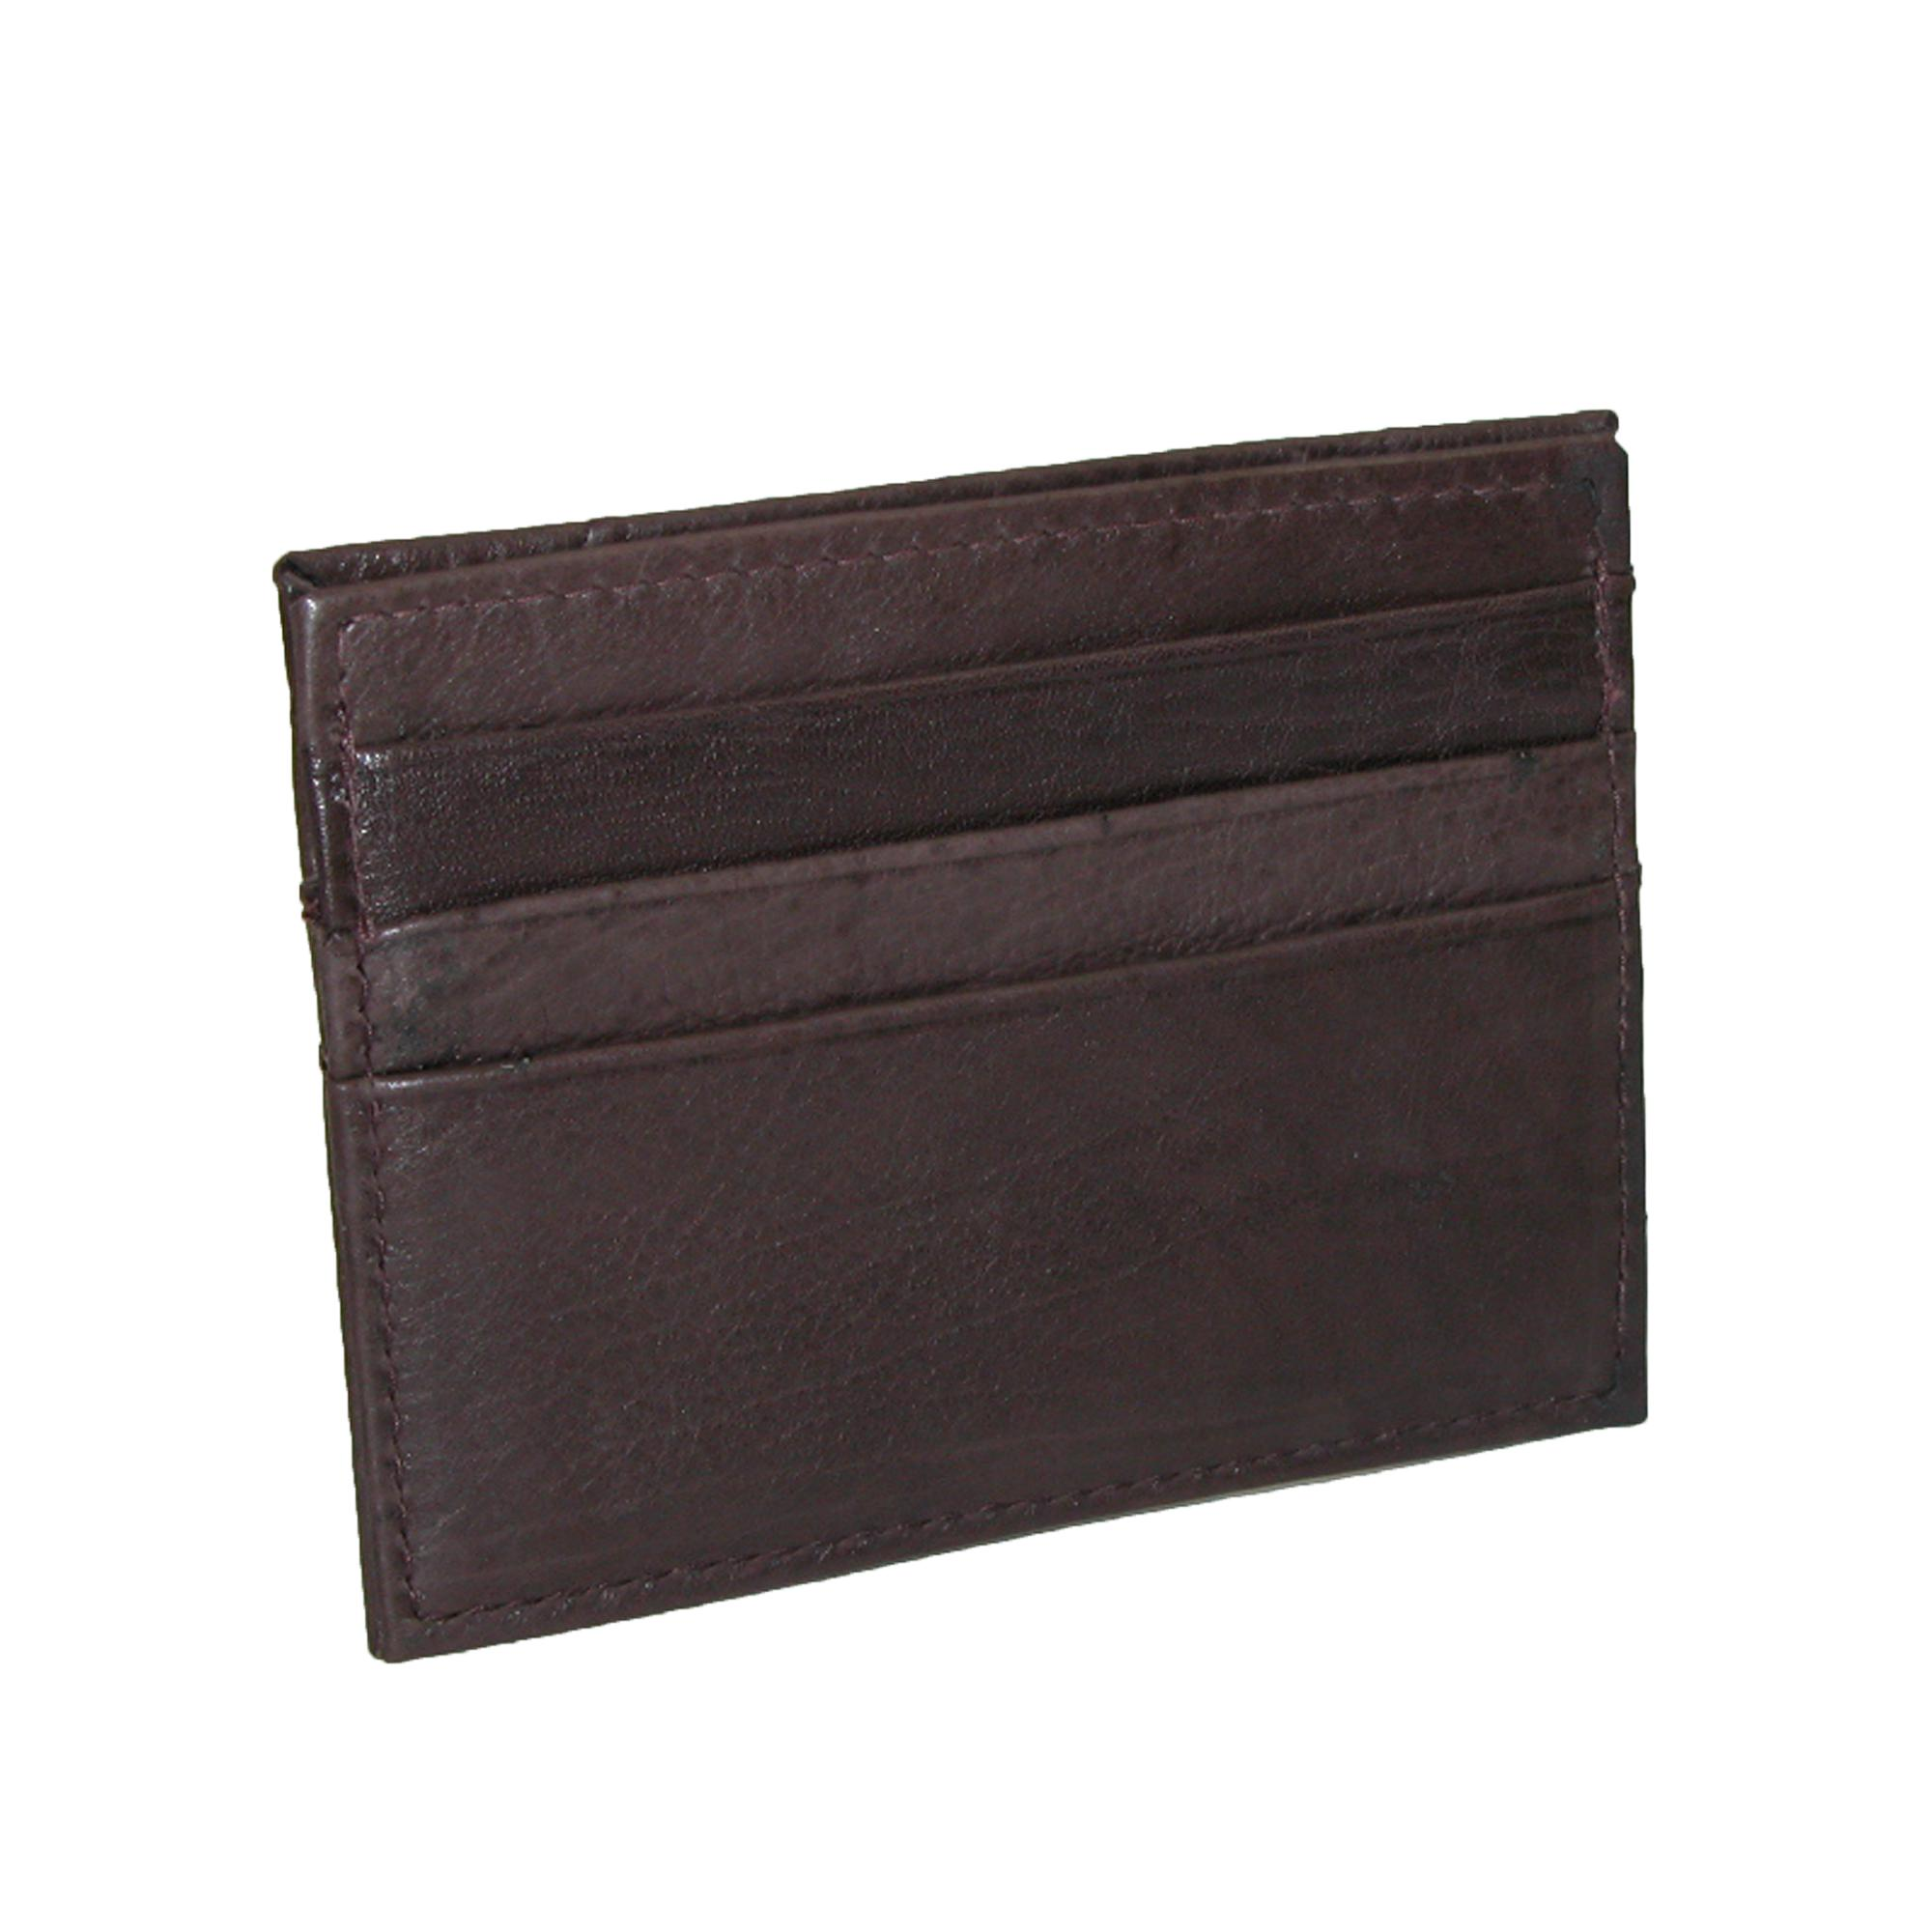 Paul_&_Taylor_Mens_Leather_Slim_Design_Card_Case_Wallet_